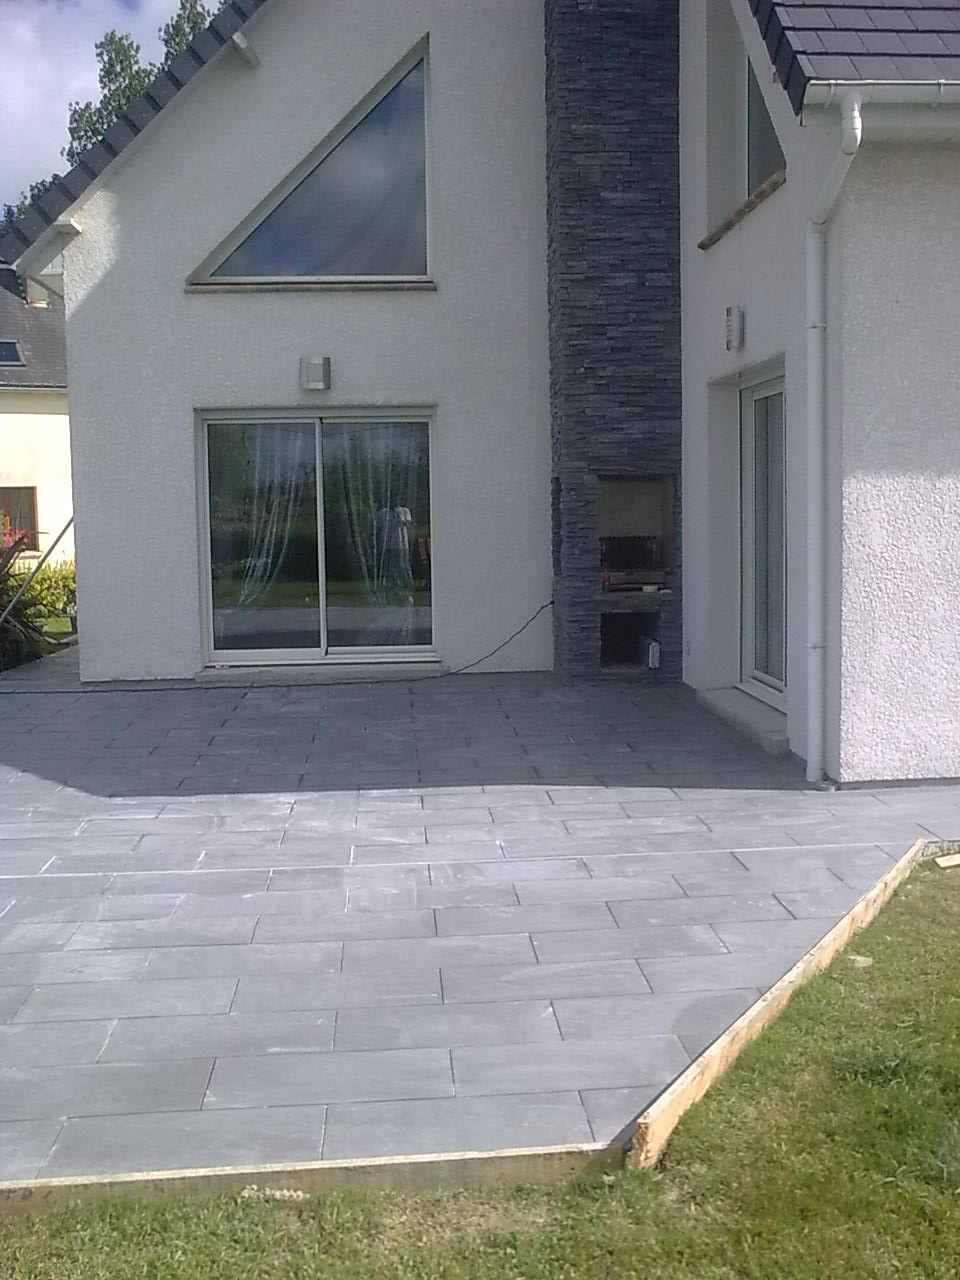 Video refaire joints carrelage devis gratuit travaux for Depot service carrelage chambery